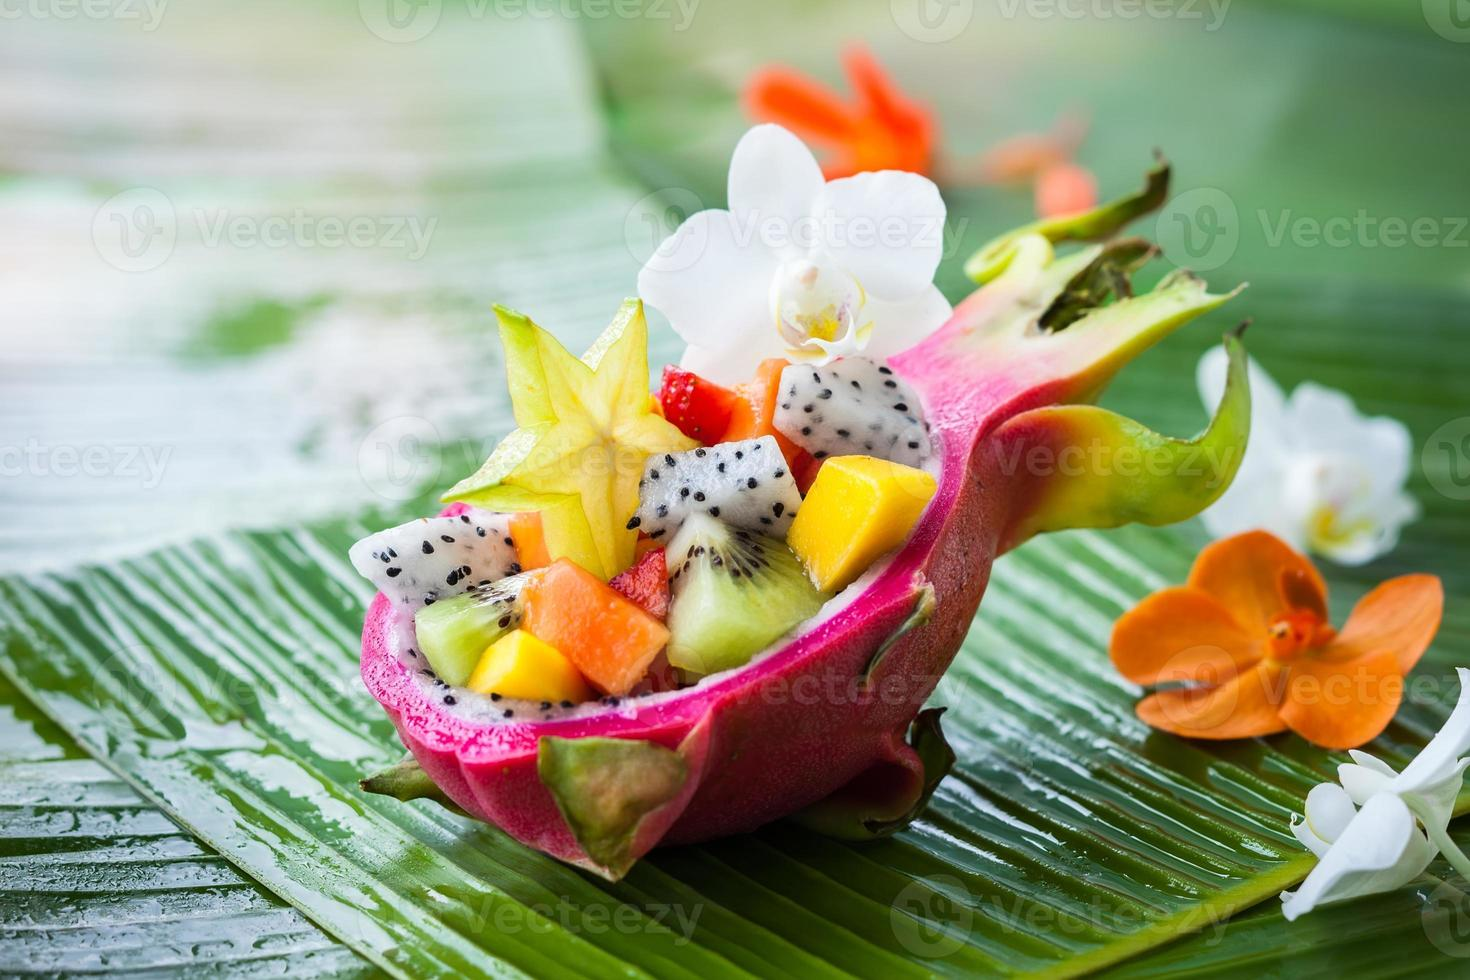 Exotic fruit salad photo